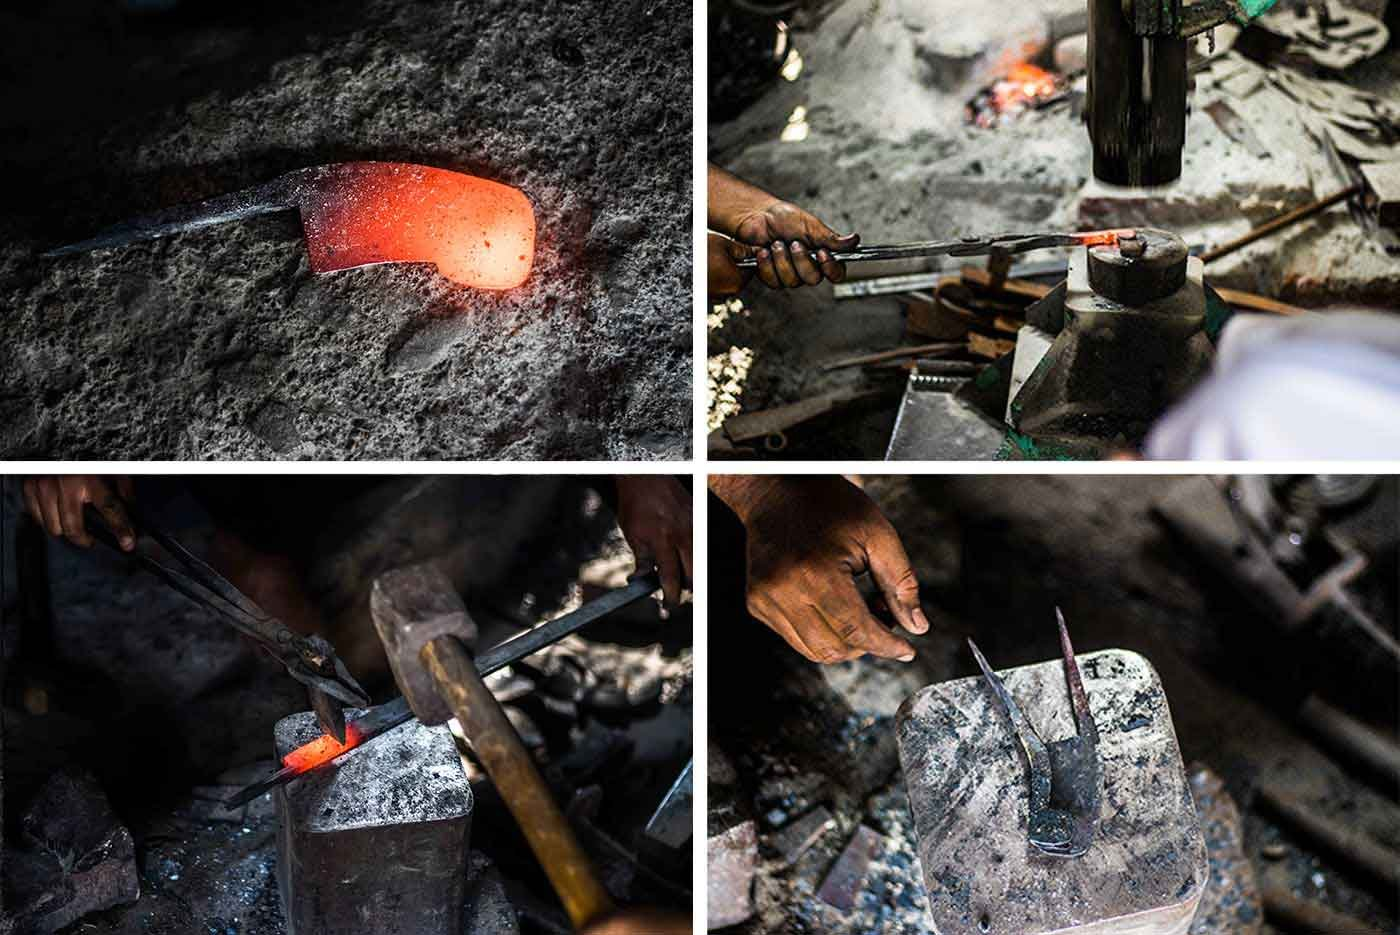 After removing it from the forge, the red-hot carbon steel (top left) is hammered by a machine for a while (top-right). Then it is manually hammered using a ghan or hammer (bottom left) to shape it into a nut cutter (bottom right)